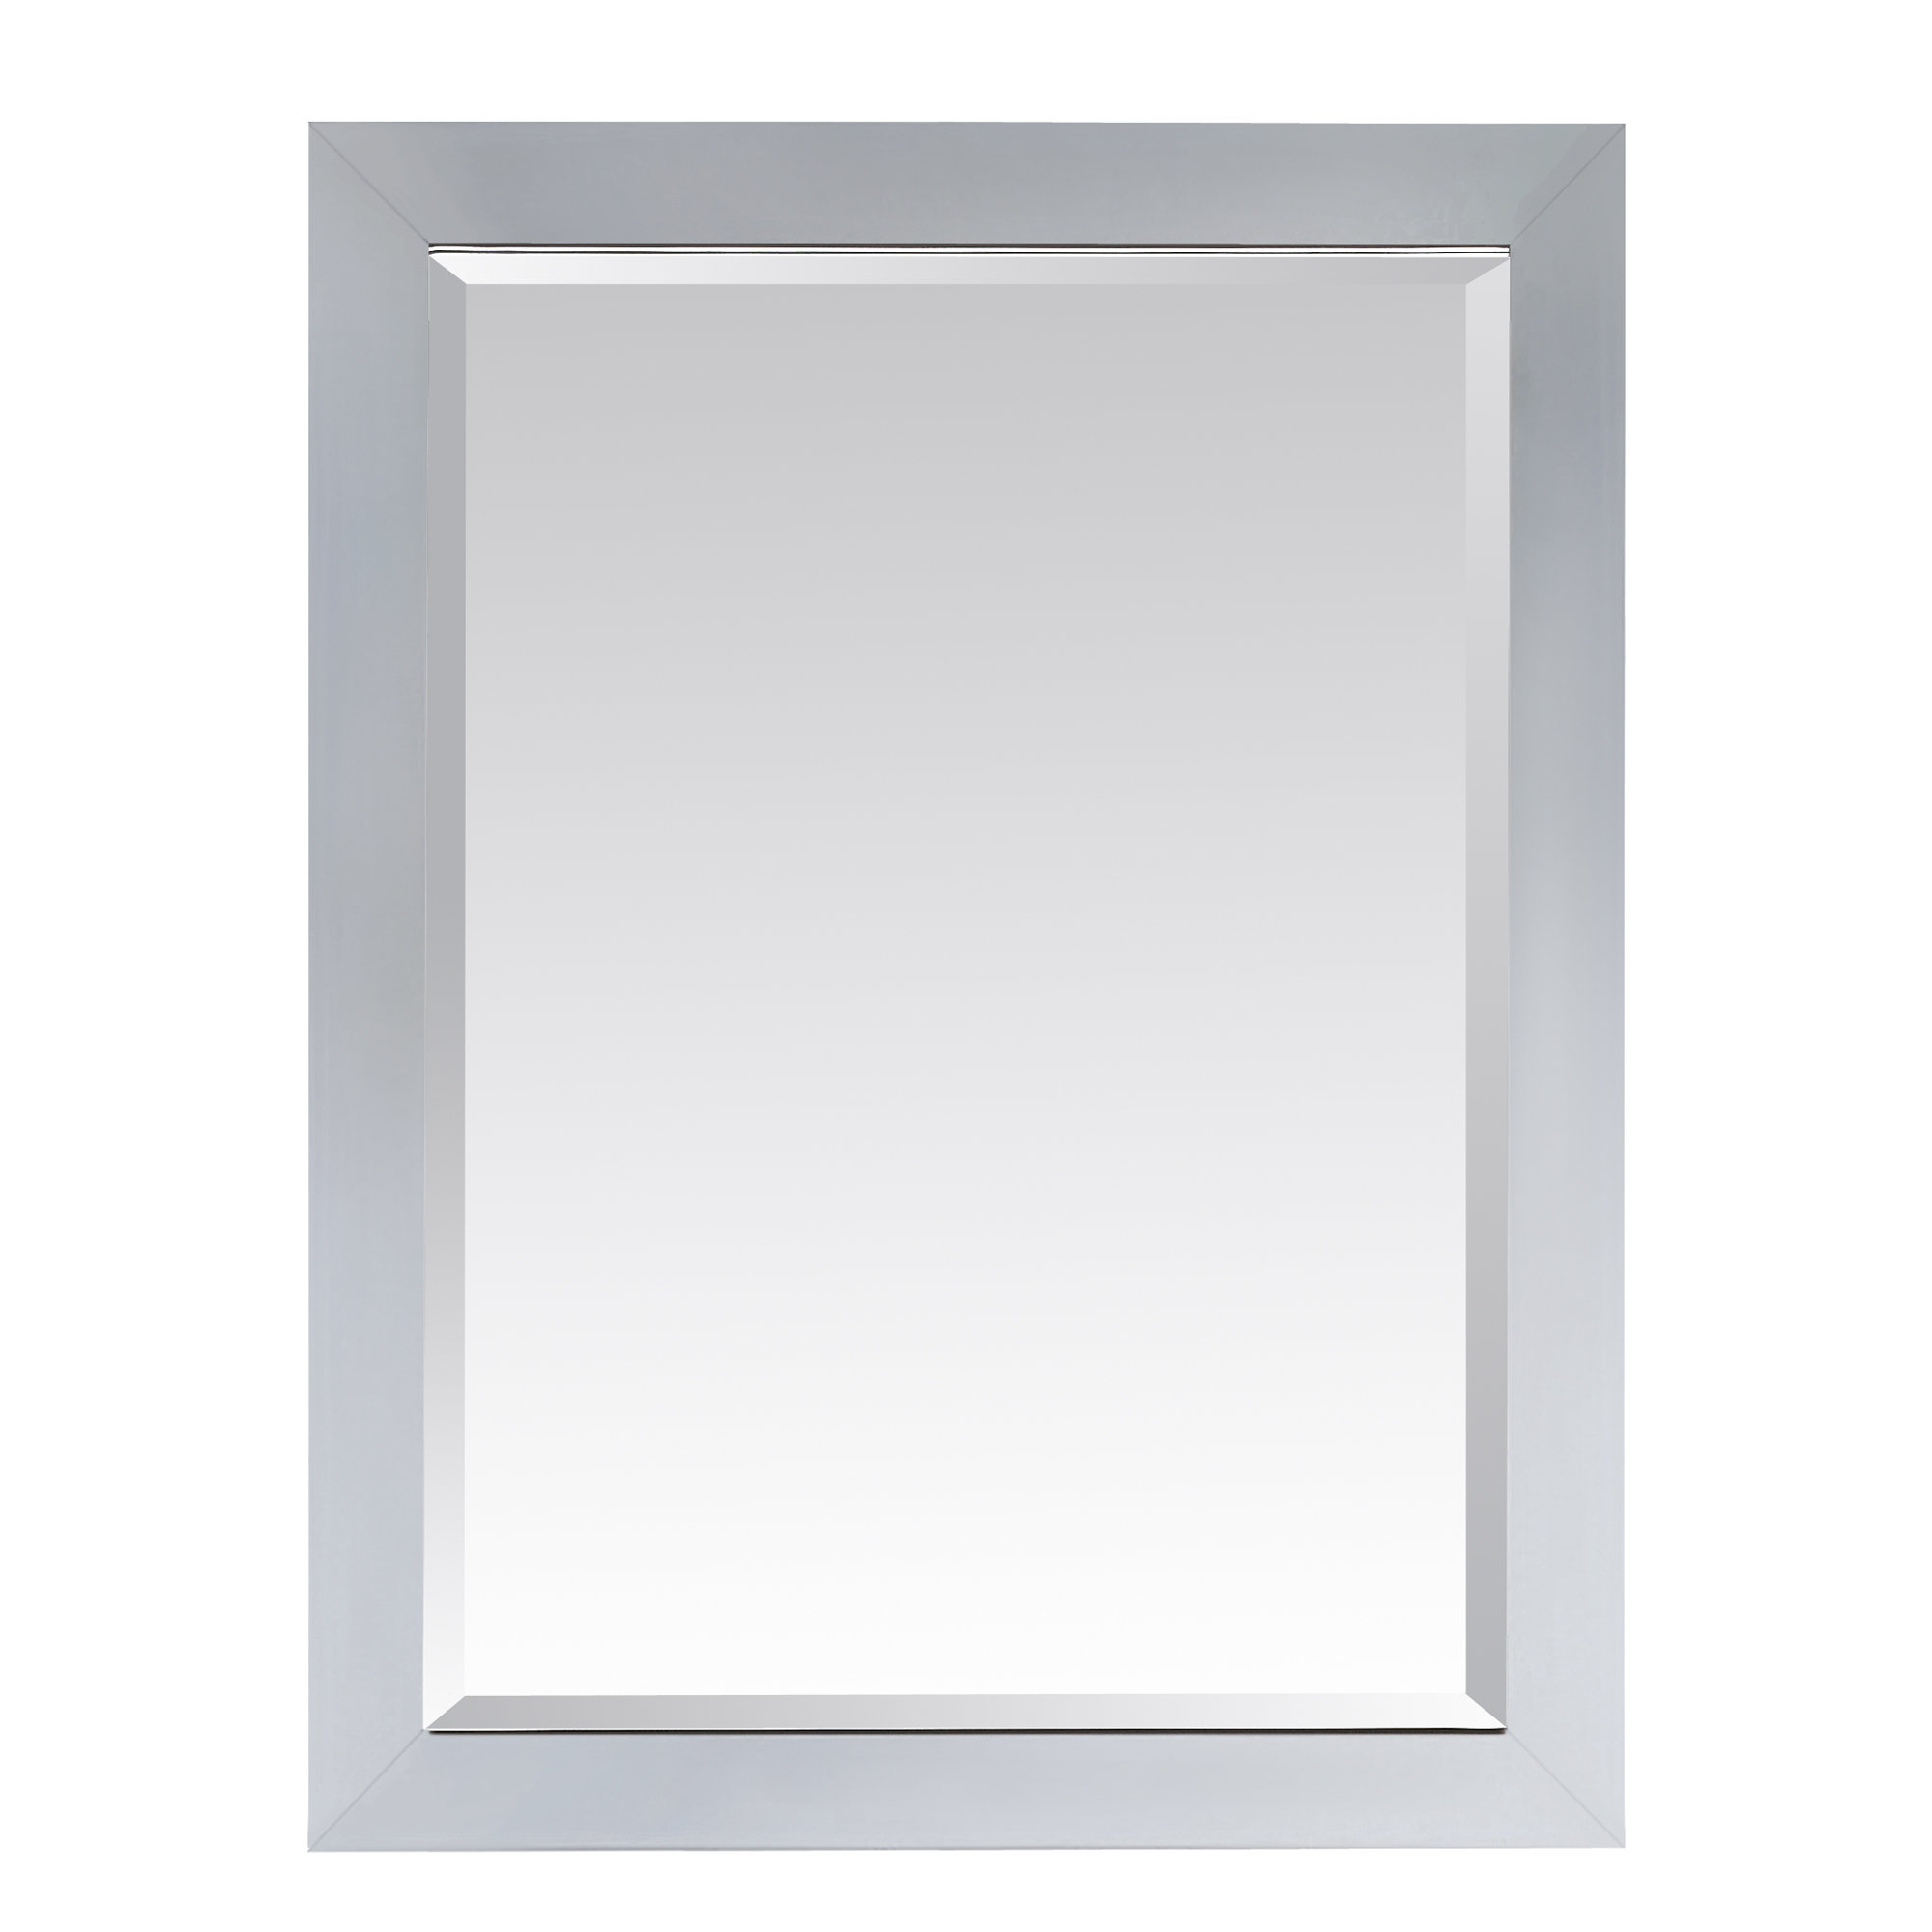 "Current Tetbury Frameless Tri Bevel Wall Mirrors Regarding Poyen 28"" Rectangle Beveled Wall Mirror (View 3 of 20)"